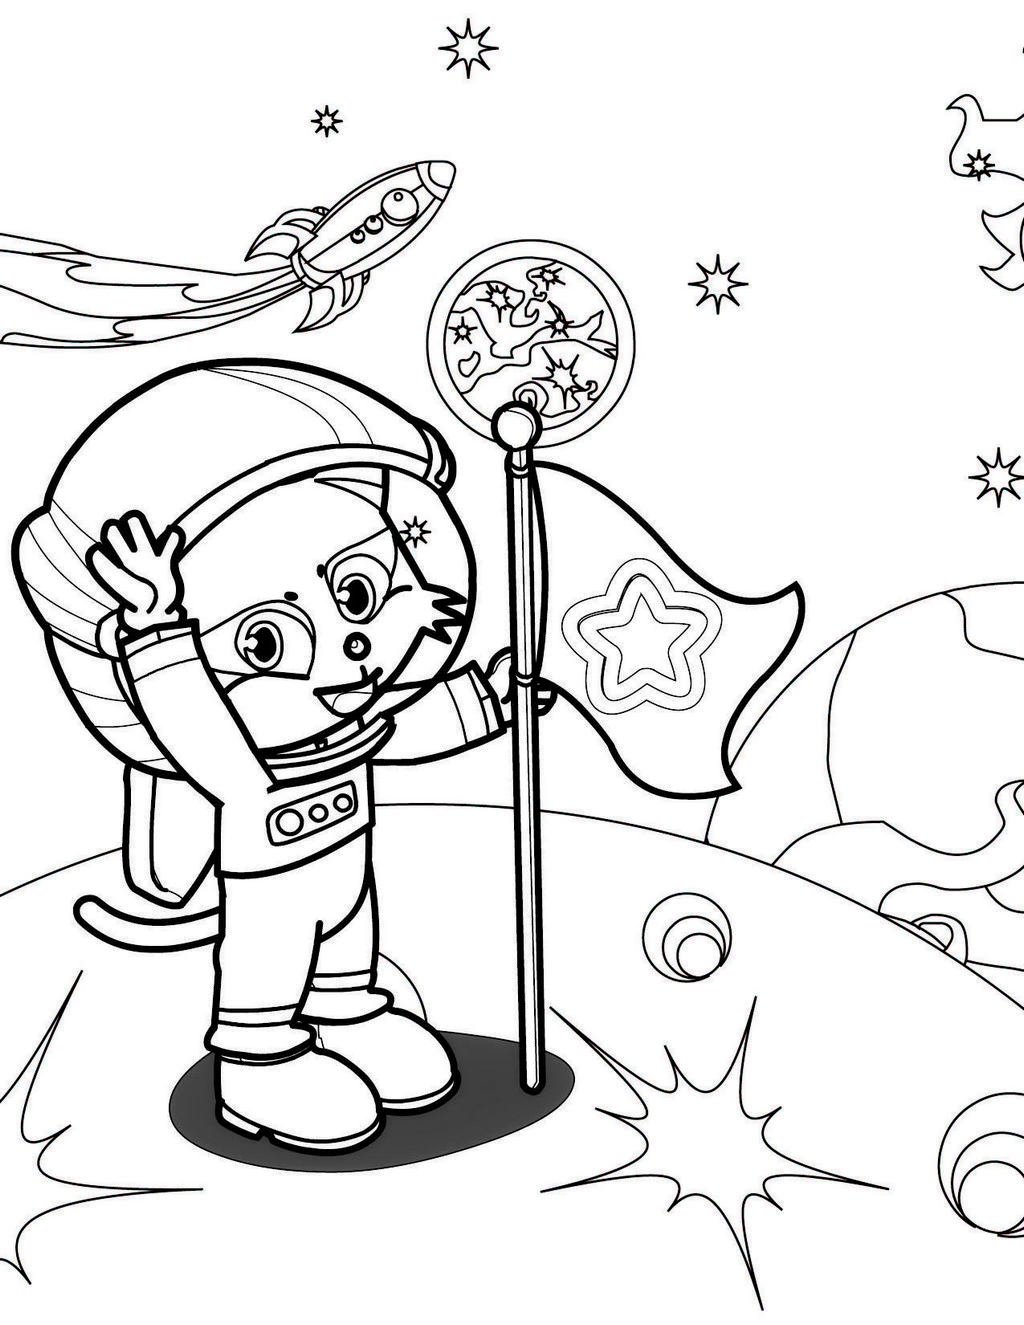 astronaut on the moon coloring picture for boys and girls